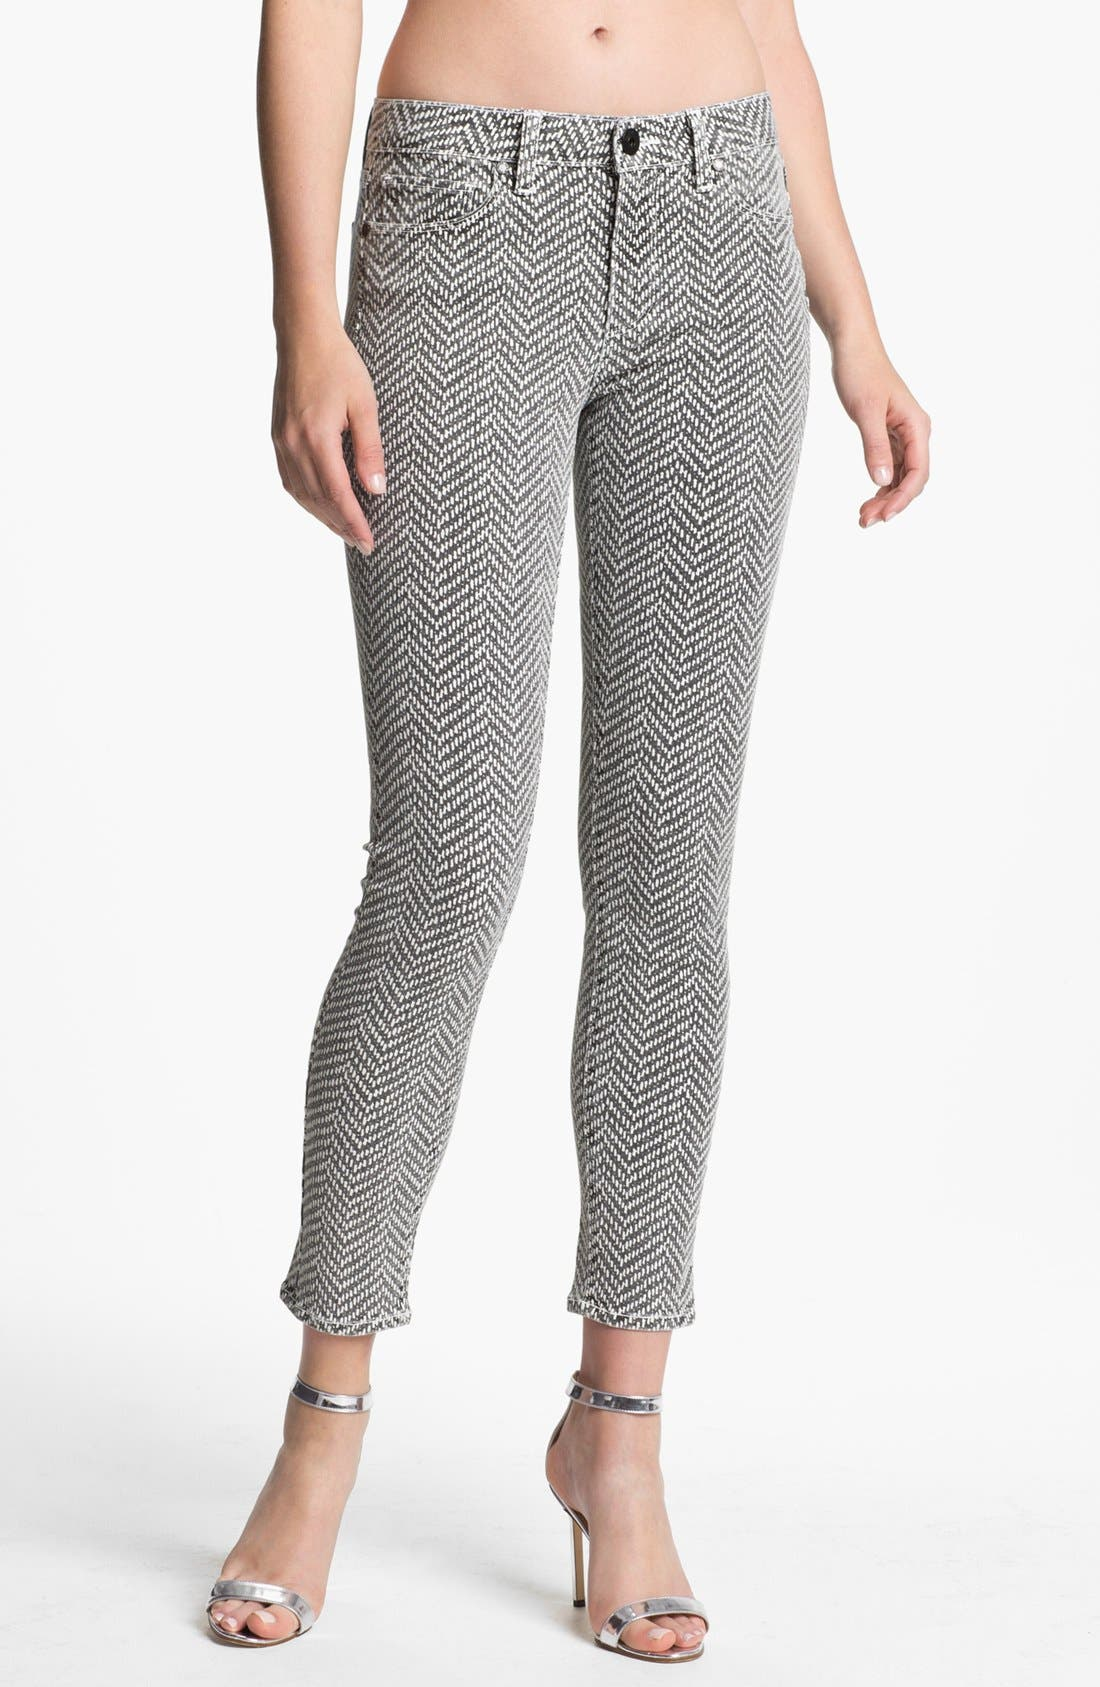 Alternate Image 1 Selected - Paige Denim 'Hoxton' Ankle Jeans (White/Black)